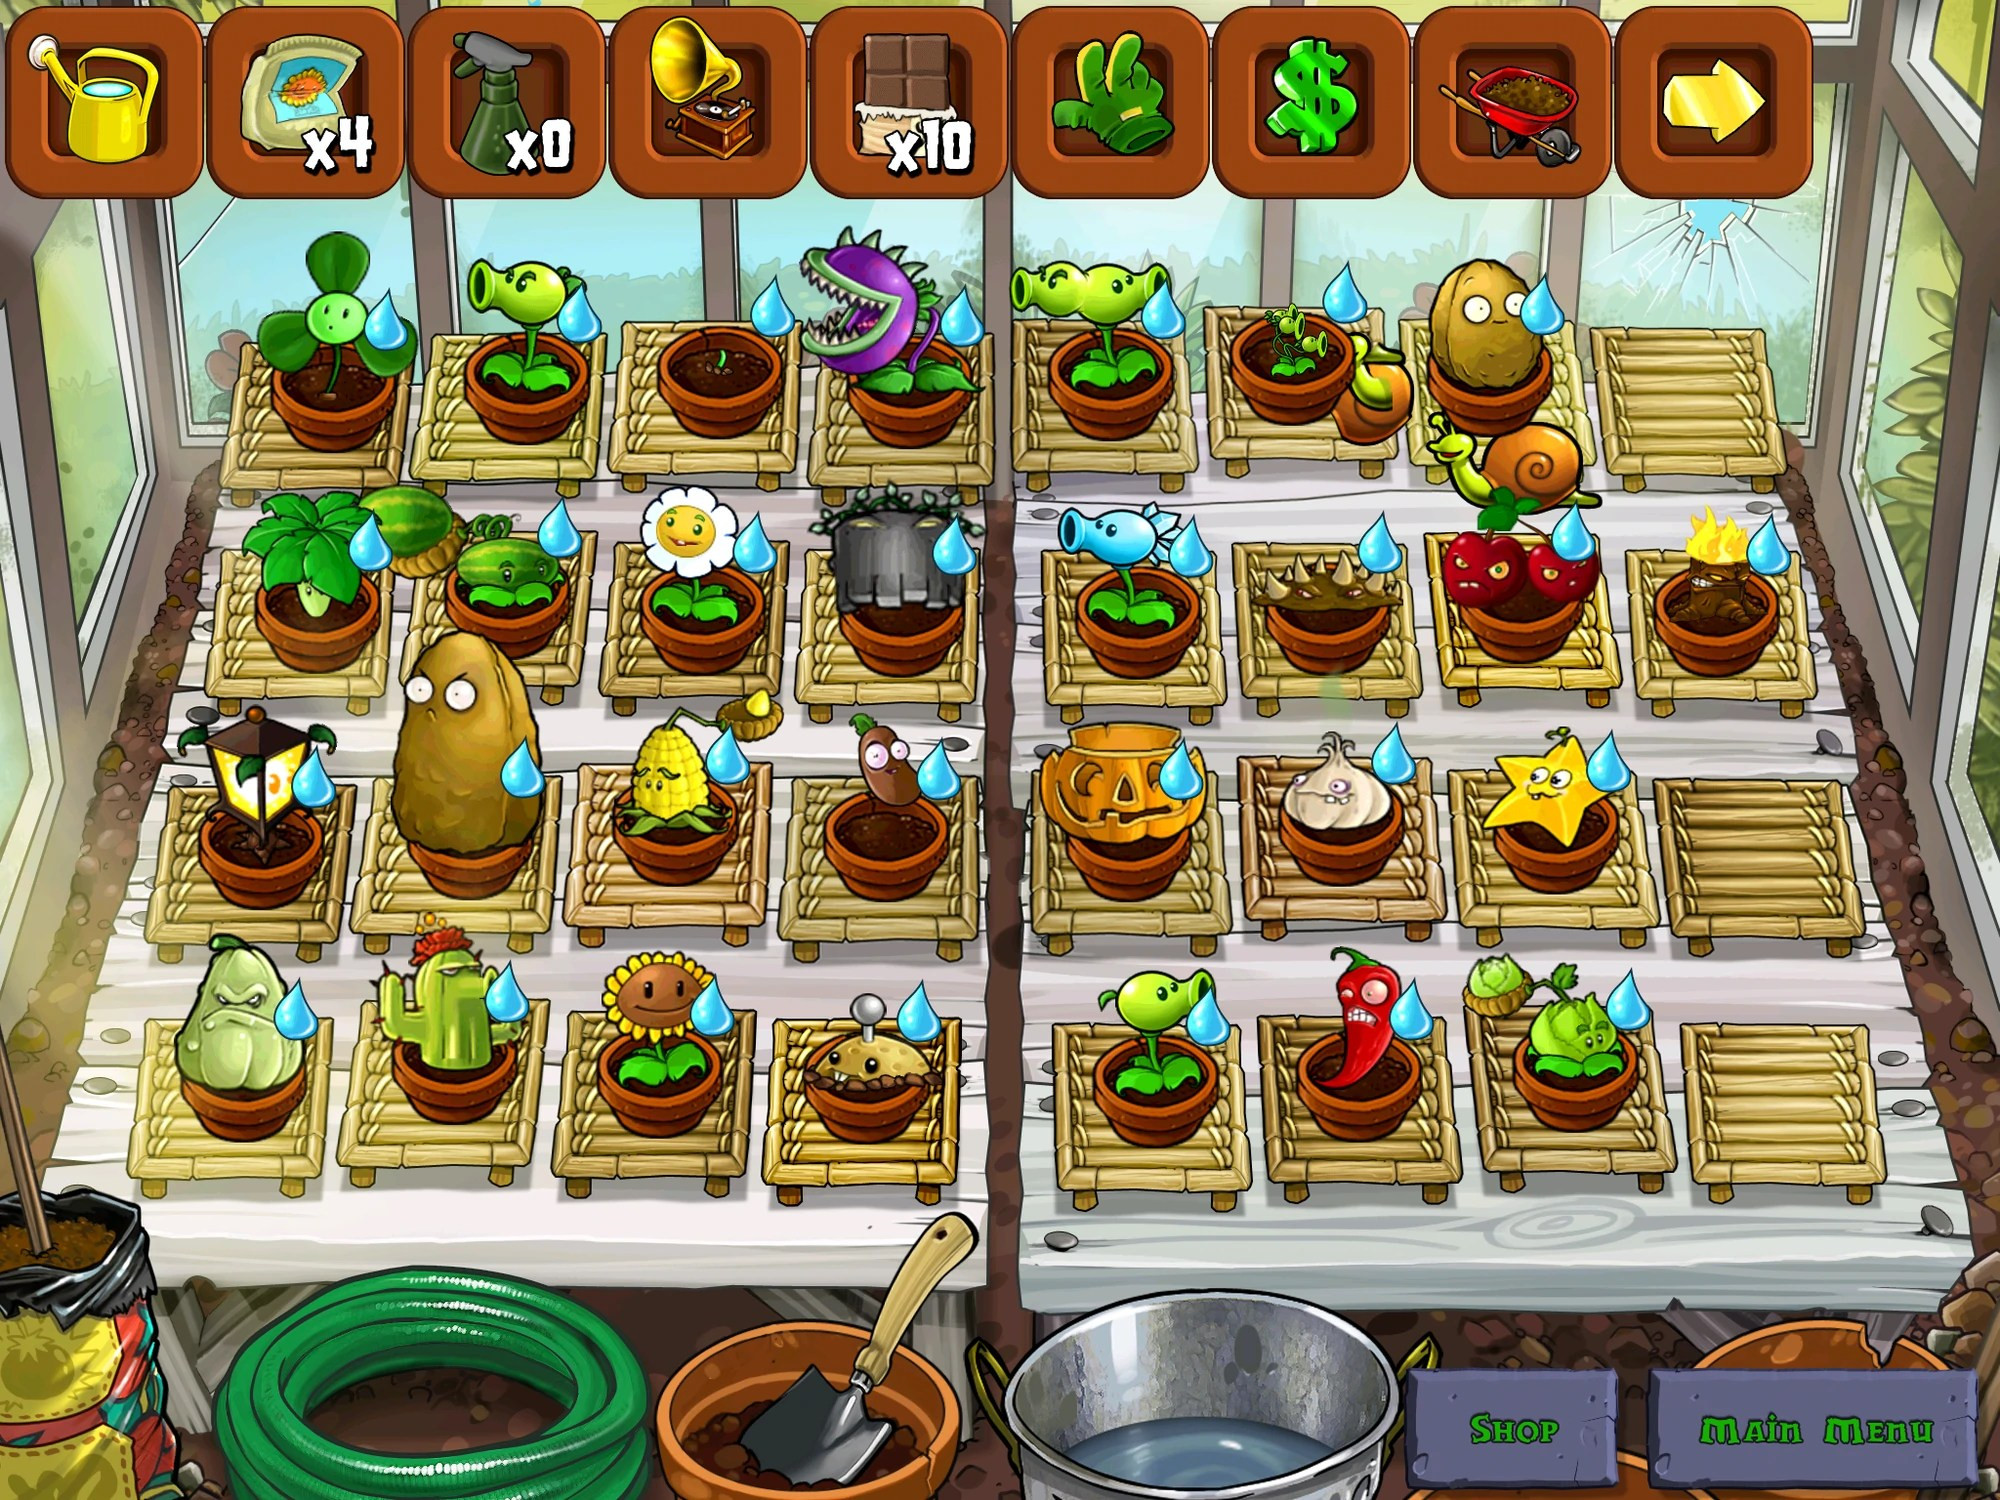 Zen Garten Plants Vs Zombies Stinky The Snail Plants Vs Zombies Wiki Fandom